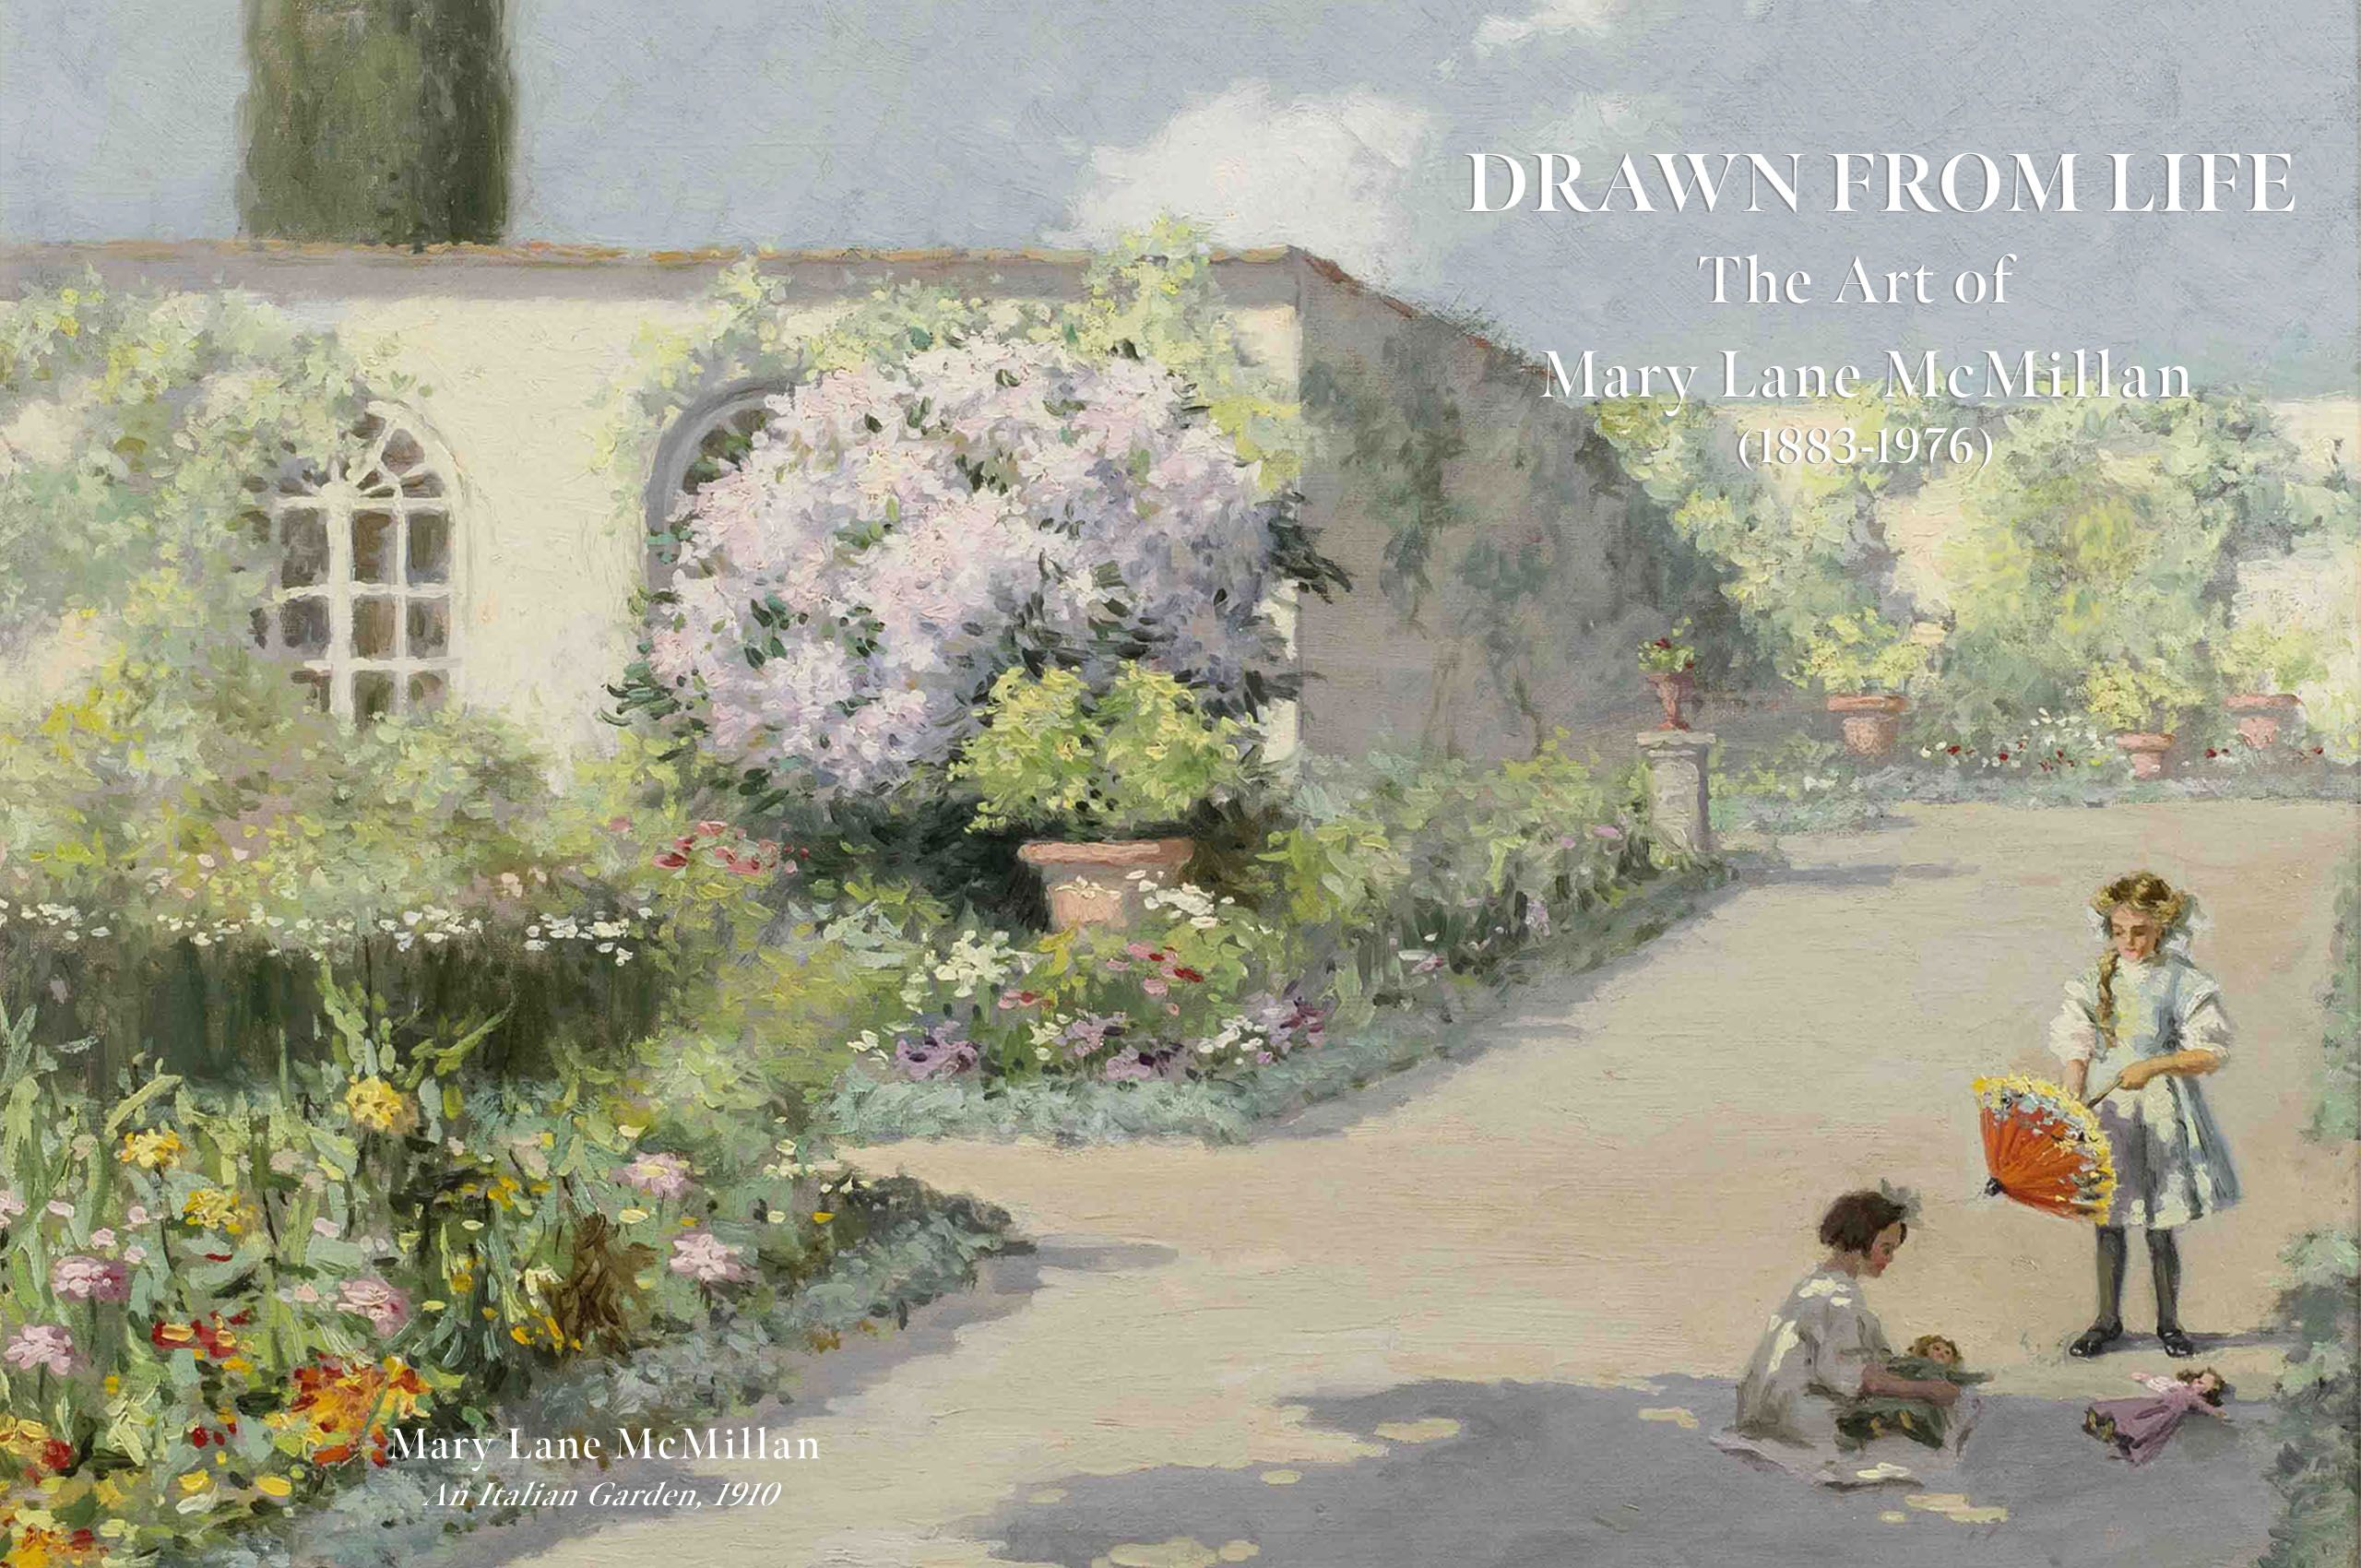 Drawn from Life: The Art of Mary Lane McMillan (1883-1976)